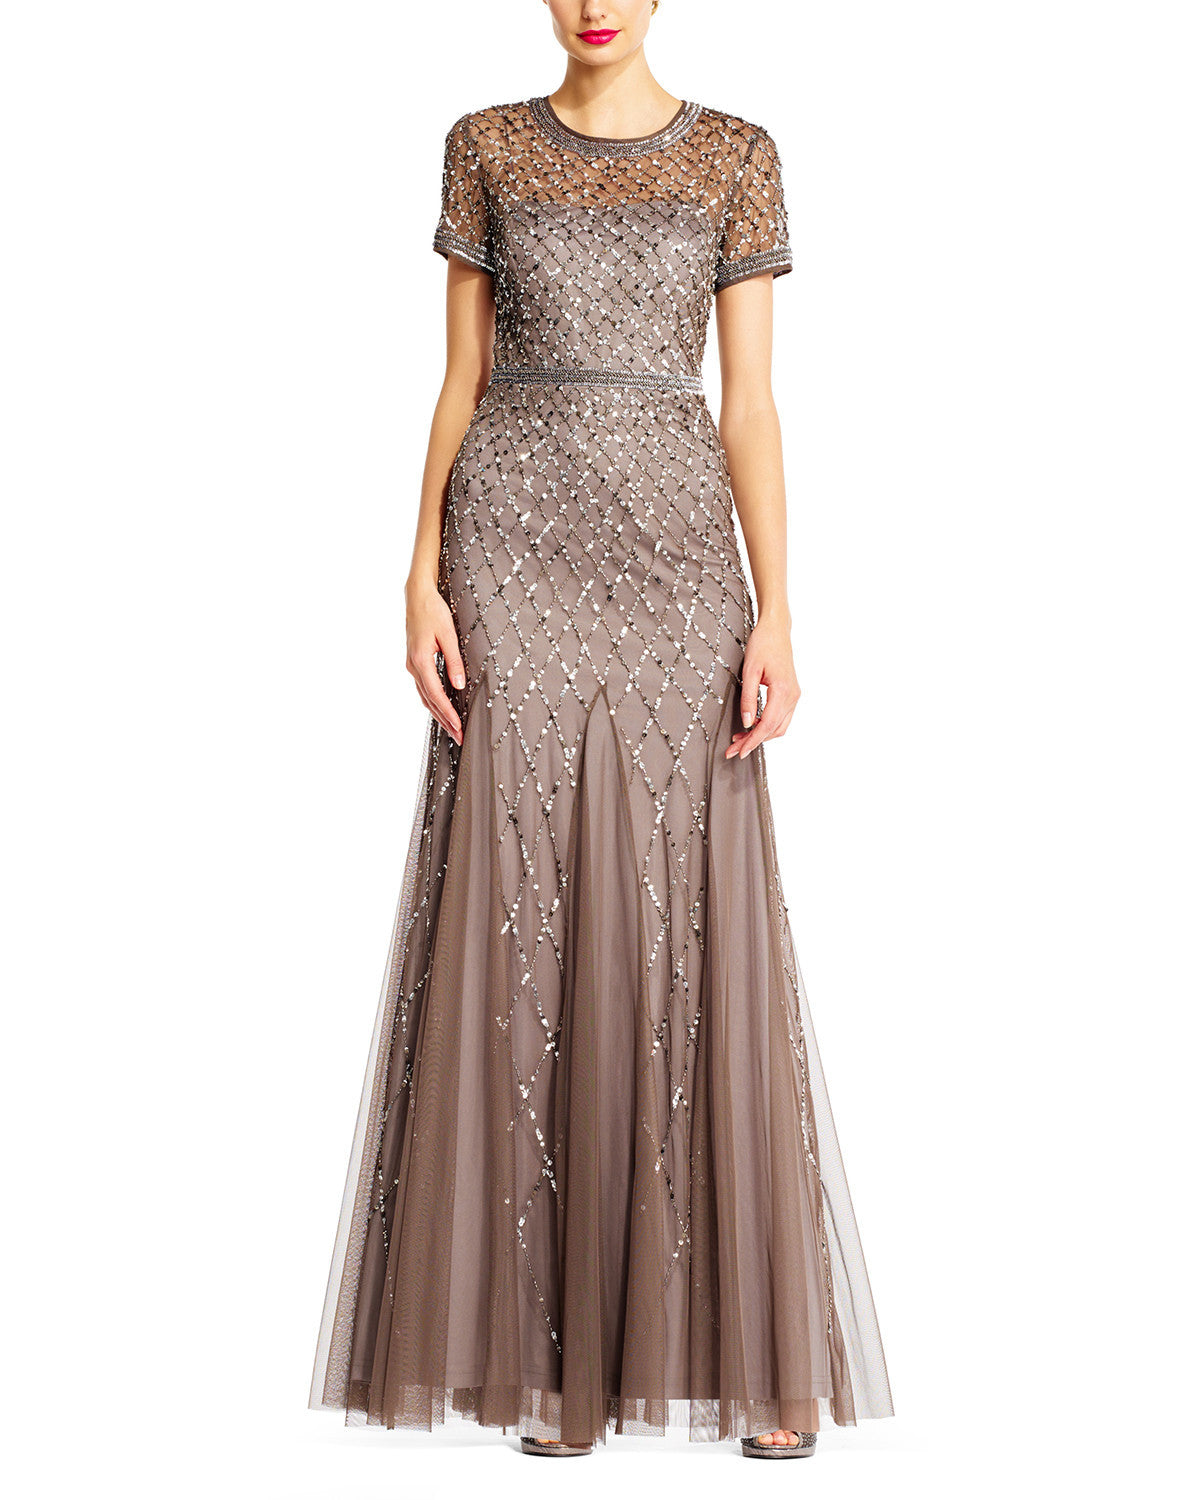 Adrianna Papell Cap Sleeve Beaded Gown in Lead Bridesmaid Dress ...